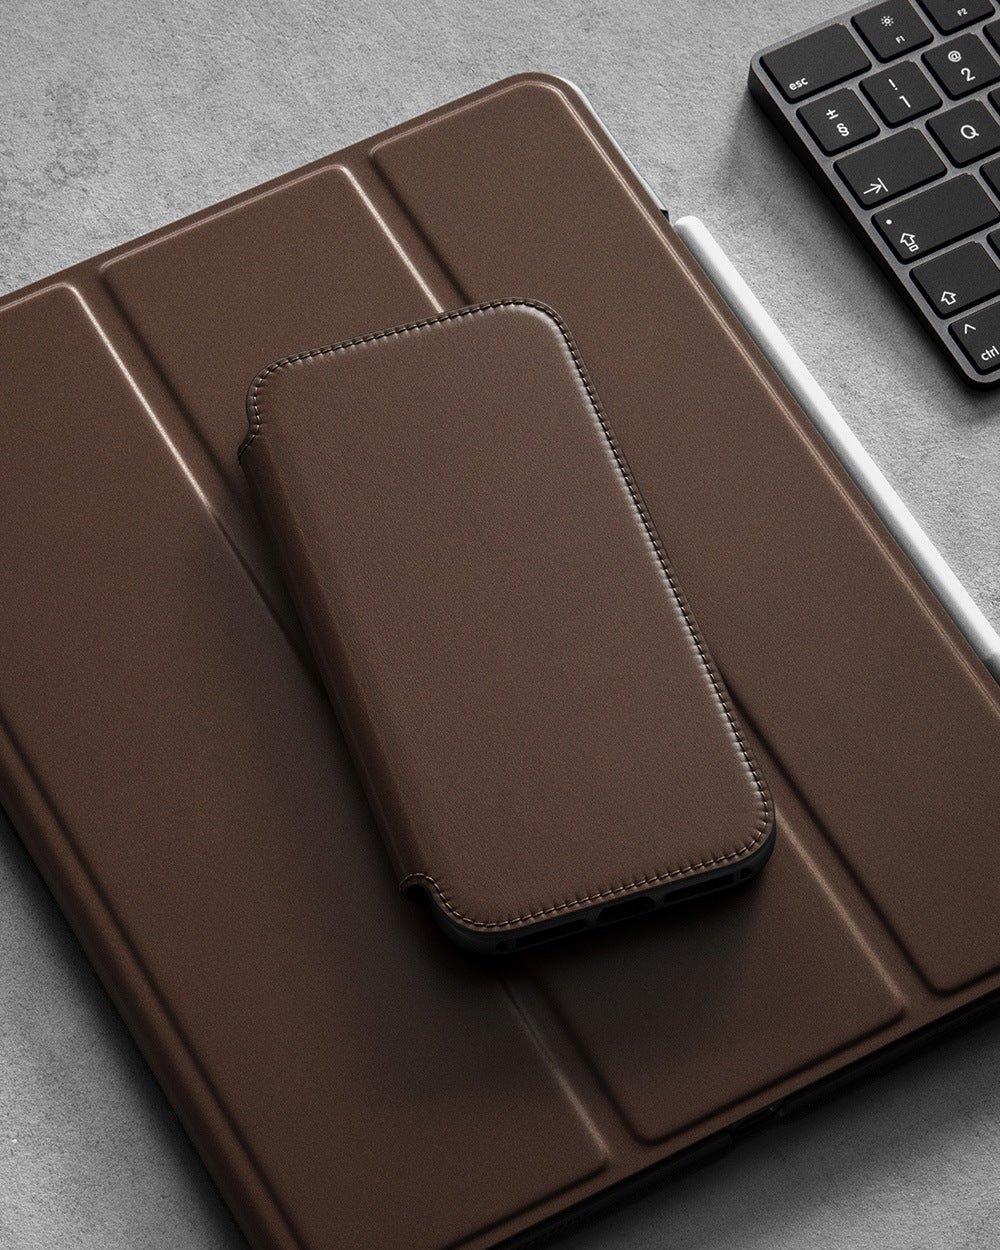 https://cdn.shopify.com/s/files/1/0384/6721/files/iPhone_12_Series_-_Rugged_Folio_Case_-_Lifestyle_04_-_Rustic_Brown_Leather_-_MOBILE.jpg?v=1602795151